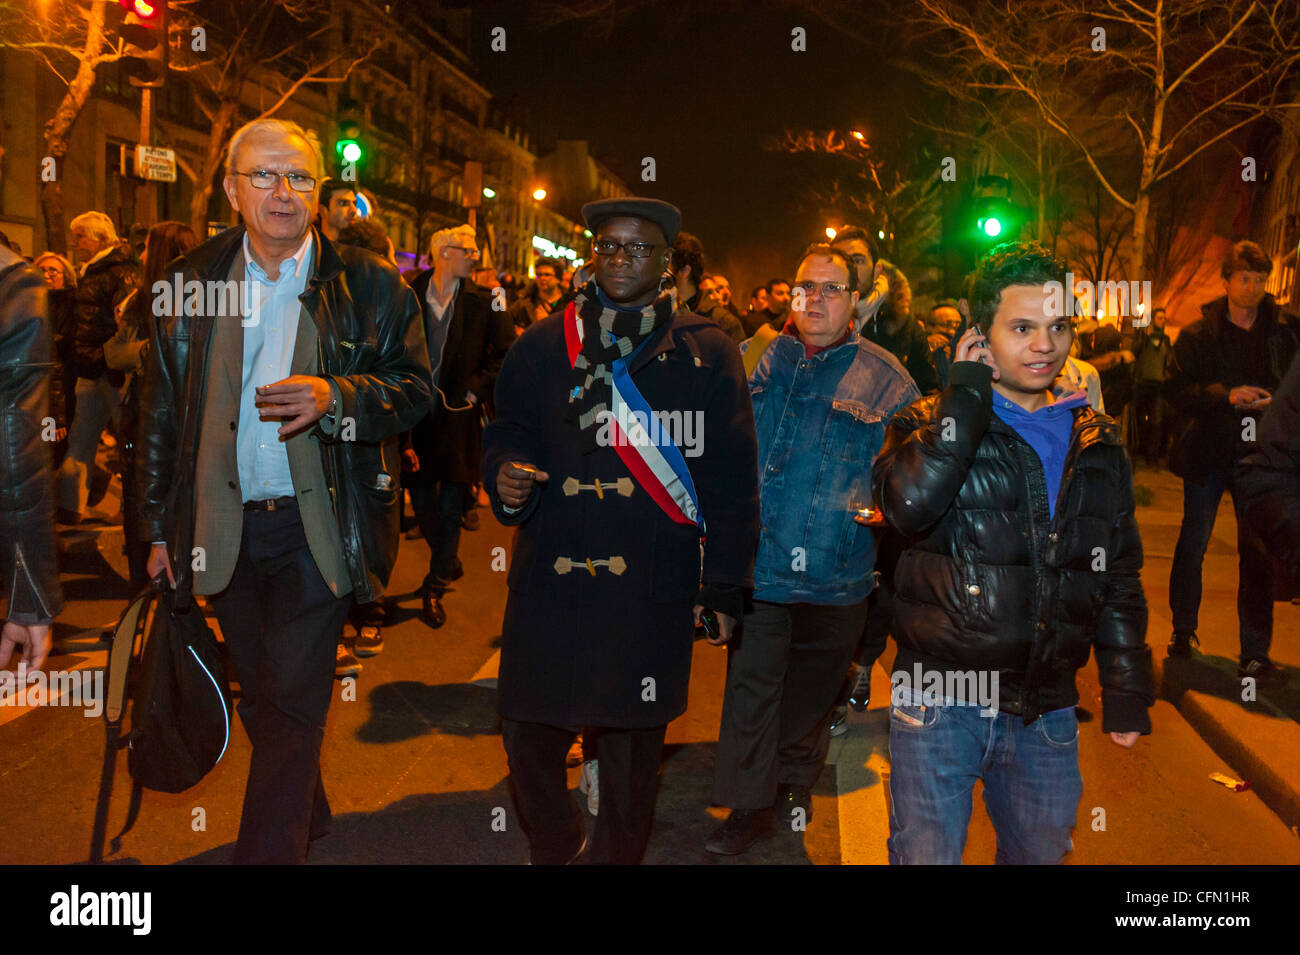 Paris, France, Crowd of Jewish People in Silent March, protests After Terrorist Attack Against a Jewish Scho-ol - Stock Image